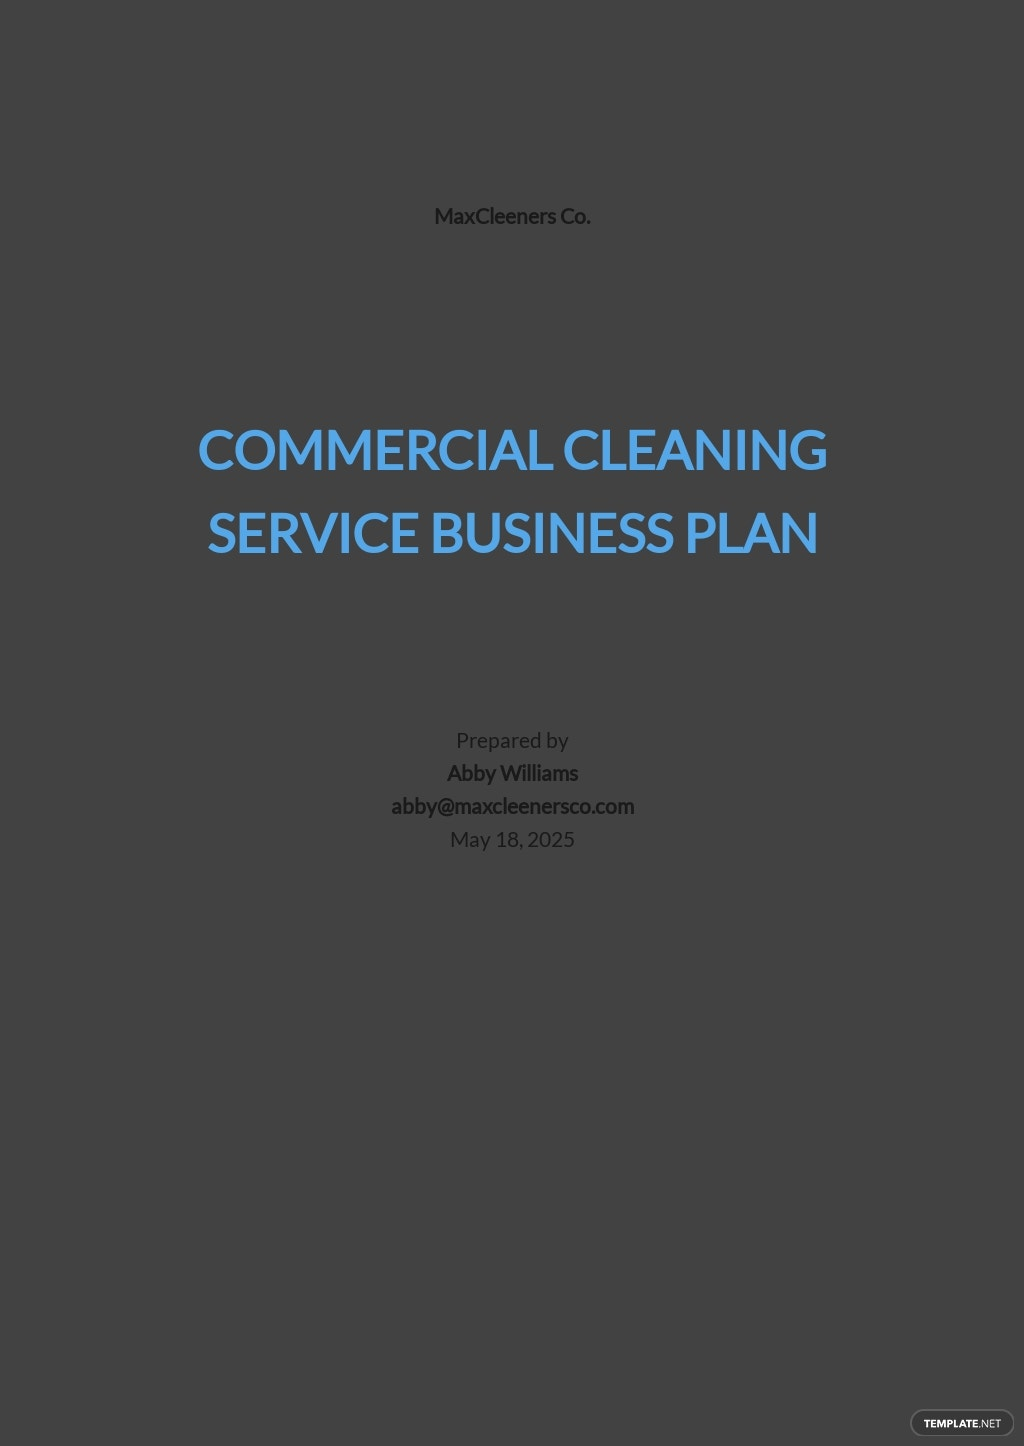 Commercial Cleaning Service Business Plan Template.jpe